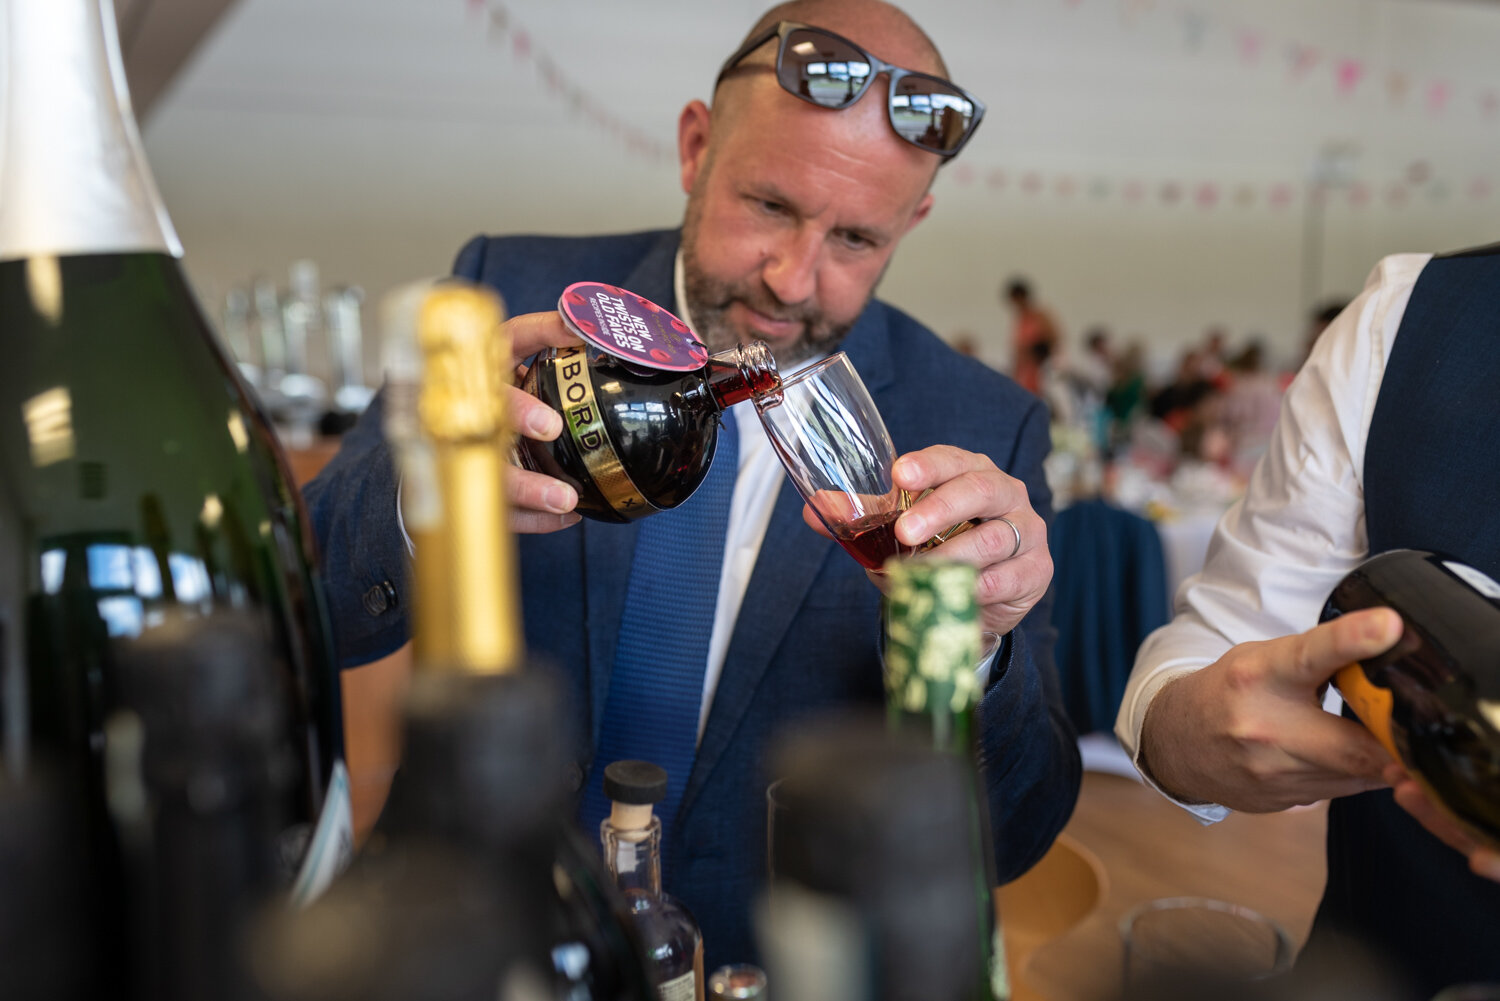 Wedding guest pouring a drink